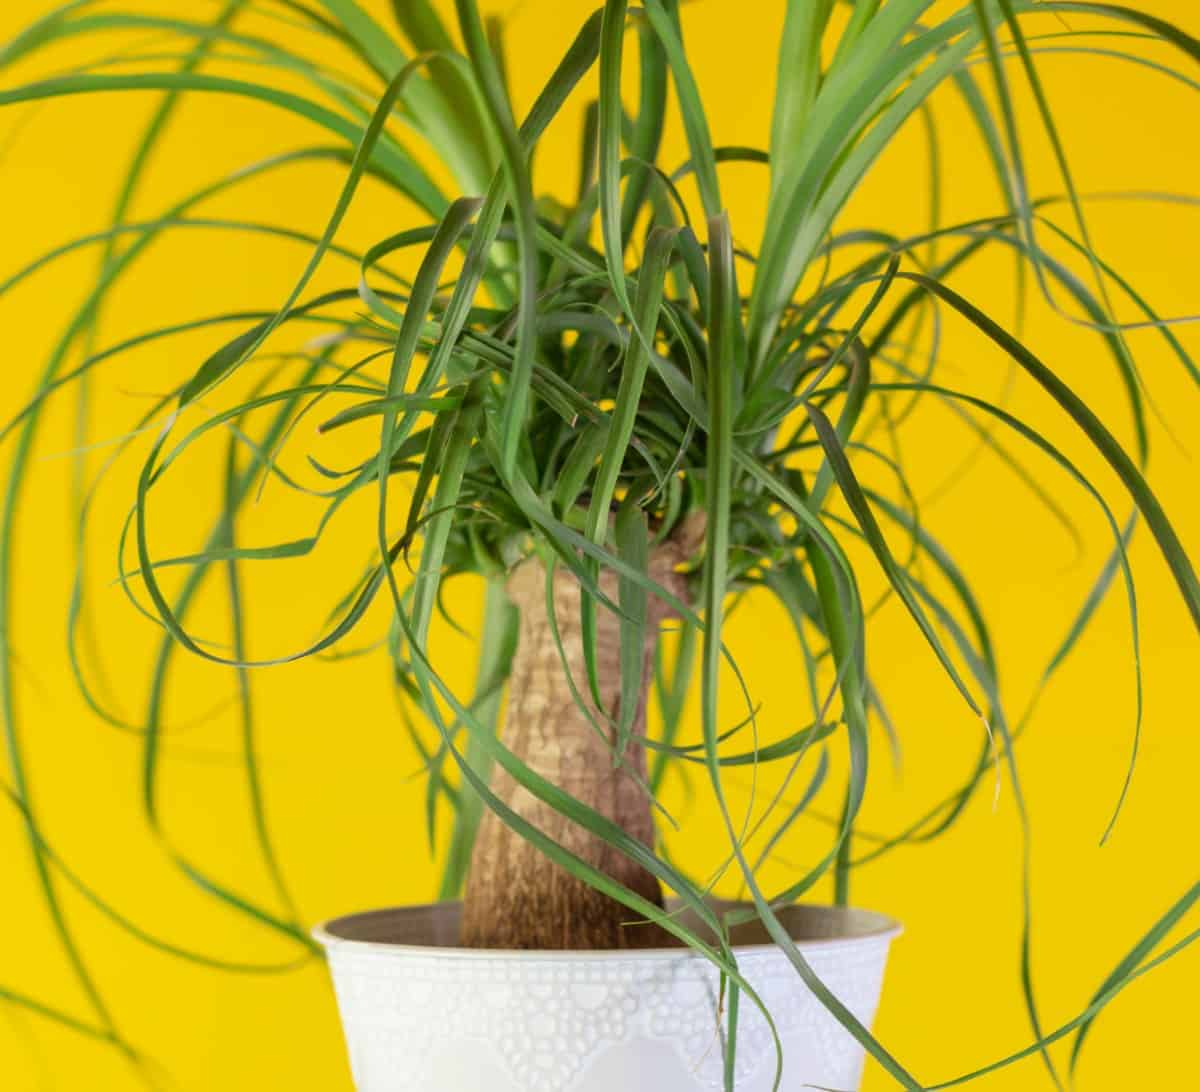 Ponytail palms are indoor trees that are not actually palm trees.